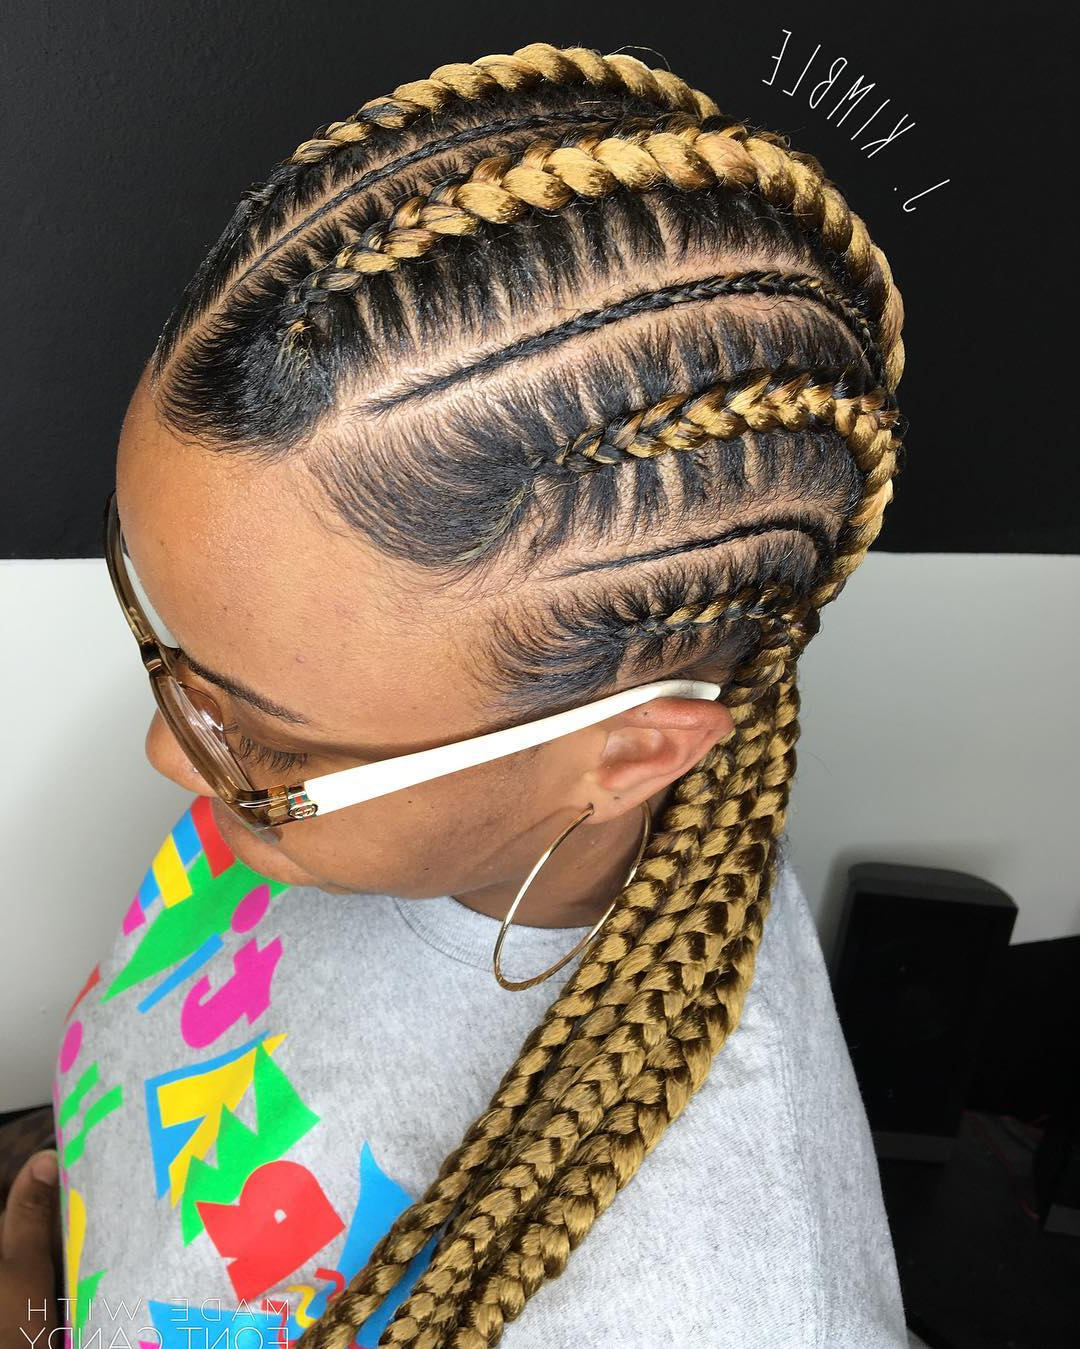 70 Best Black Braided Hairstyles That Turn Heads In 2019 With Widely Used Cornrow Fishtail Side Braided Hairstyles (View 11 of 20)